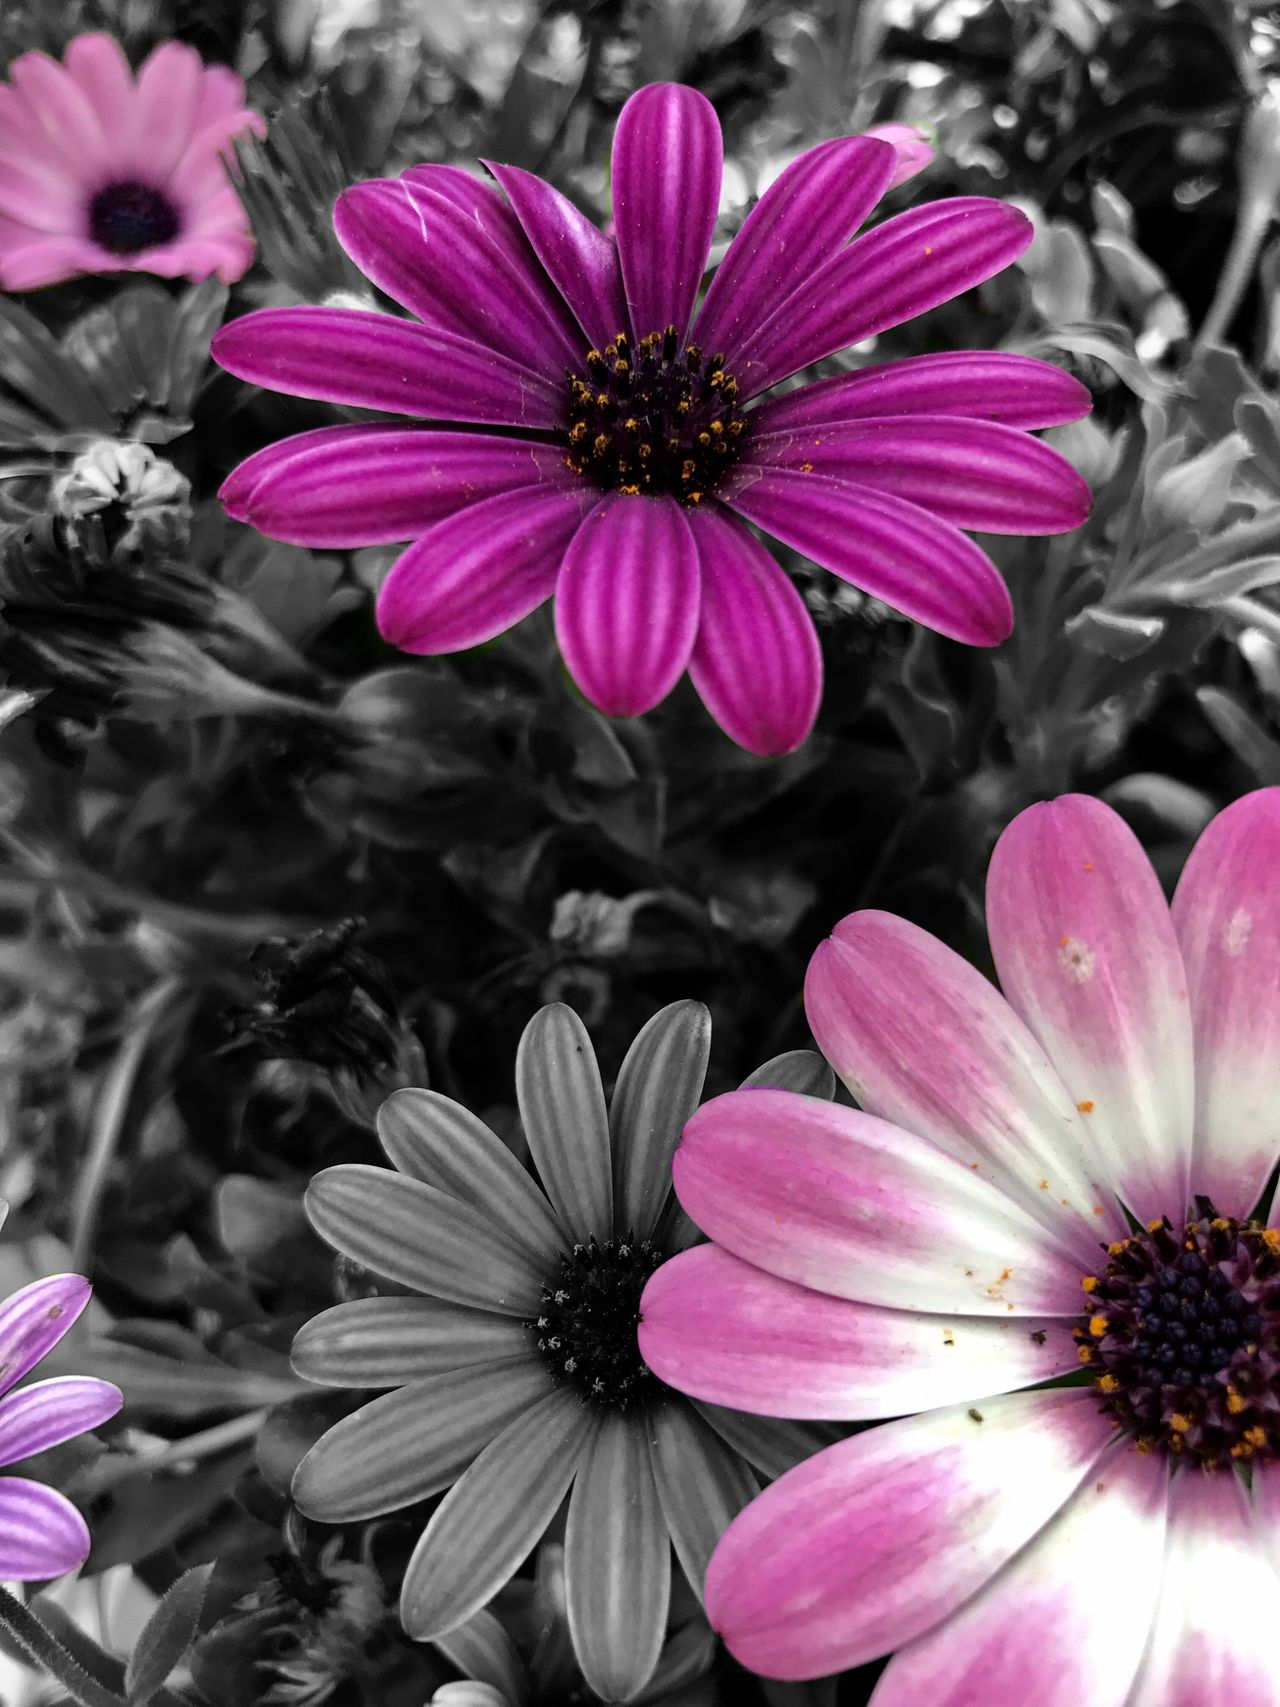 Flower Petal Fragility Beauty In Nature Flower Head Pink Color Osteospermum No People Pollen Nature Growth Blooming Close-up Freshness Day Blackandwhite Black And White Colors Artistic